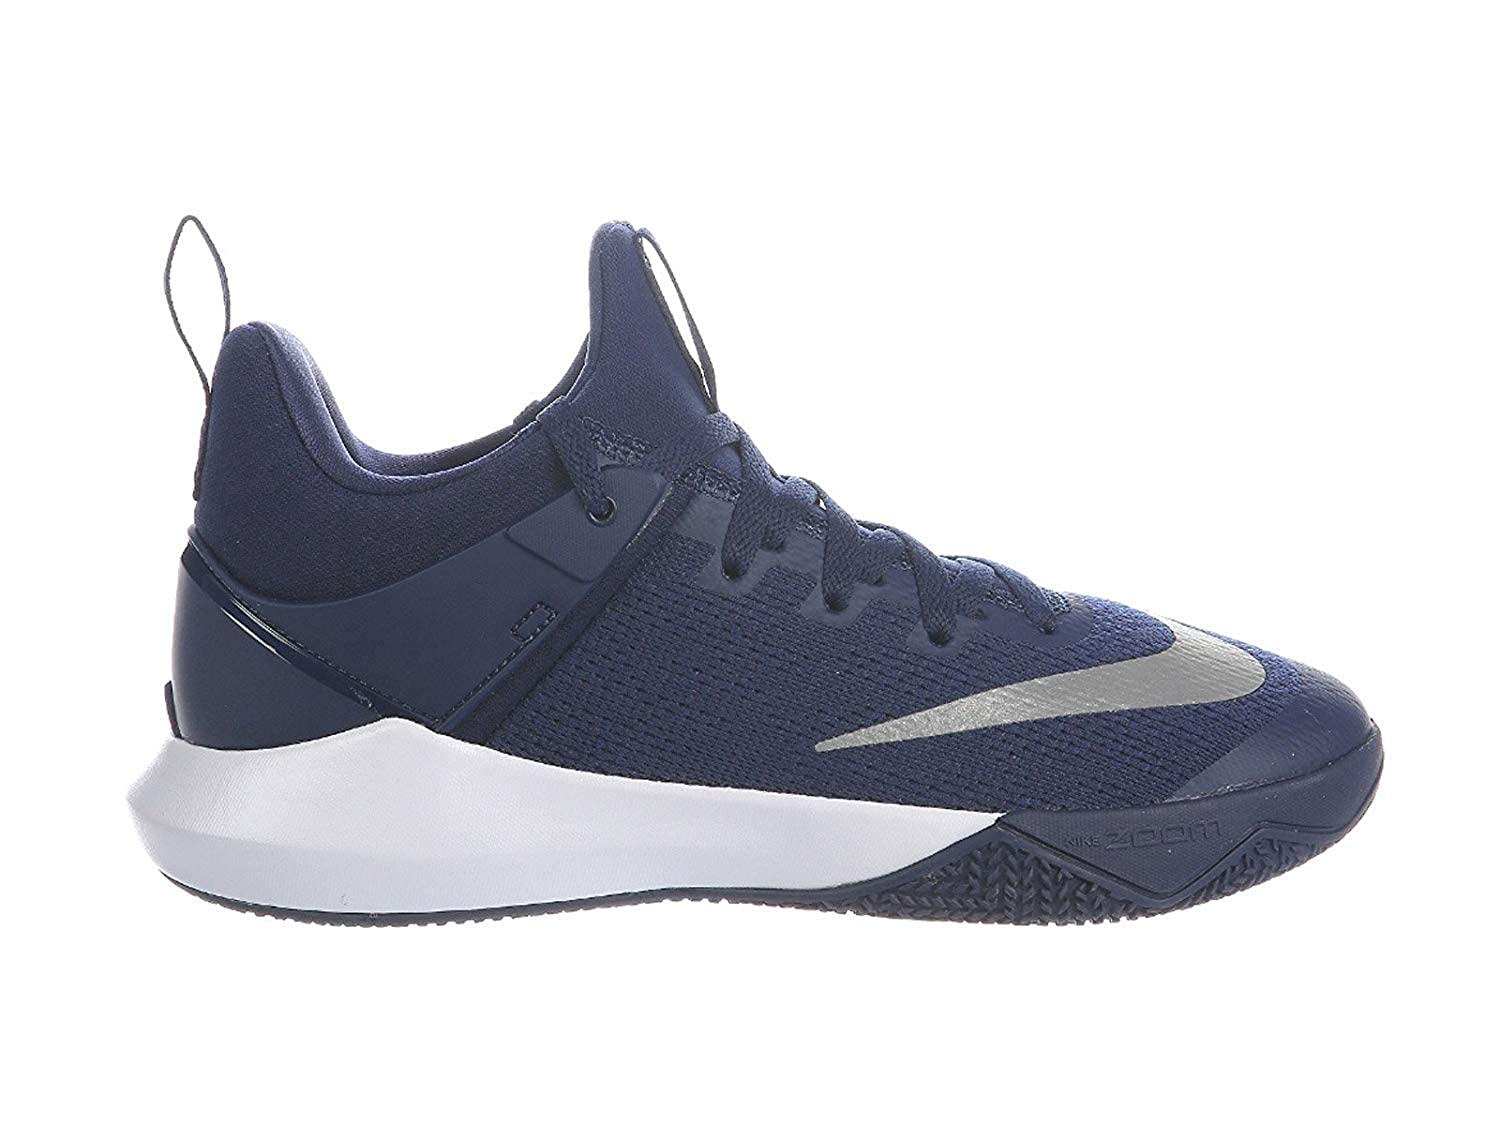 separation shoes 5b3f2 f1b79 Amazon.com   Nike Women s Zoom Shift Basketball Shoe   Basketball